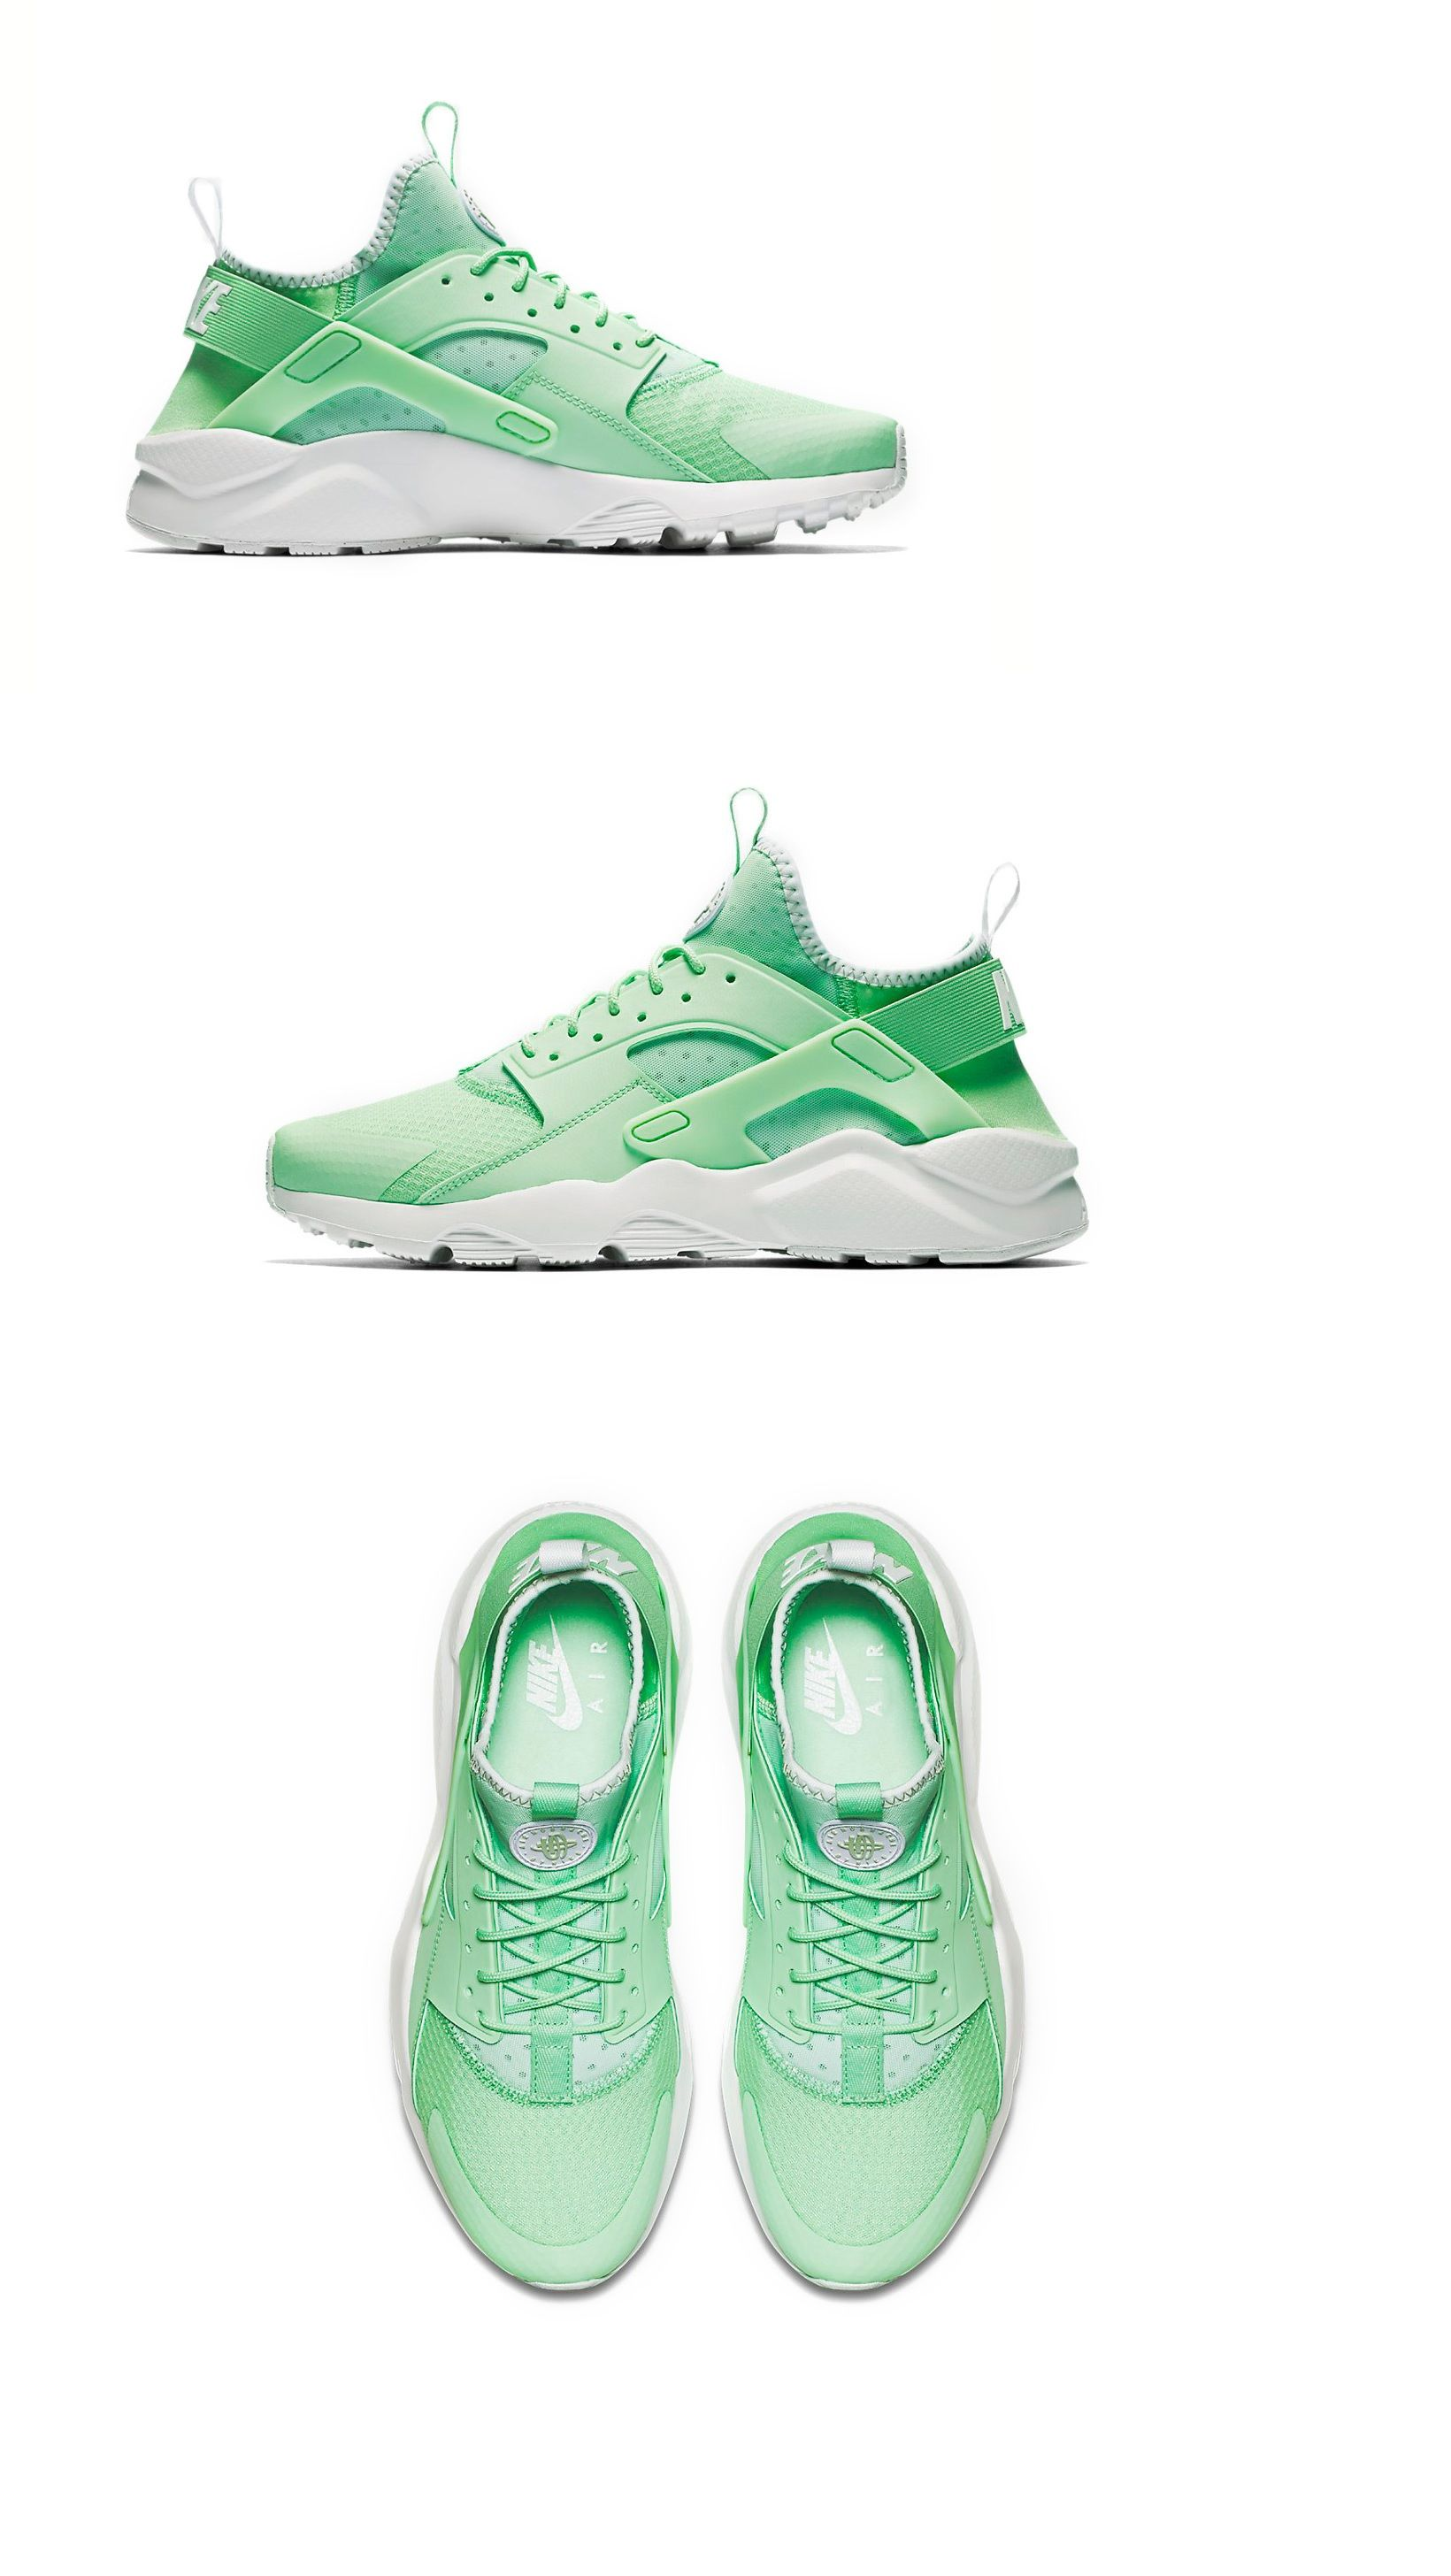 NIKE  AIR  HUARACHE  ULTRA  FRESH  MINT  5cee6fc85793